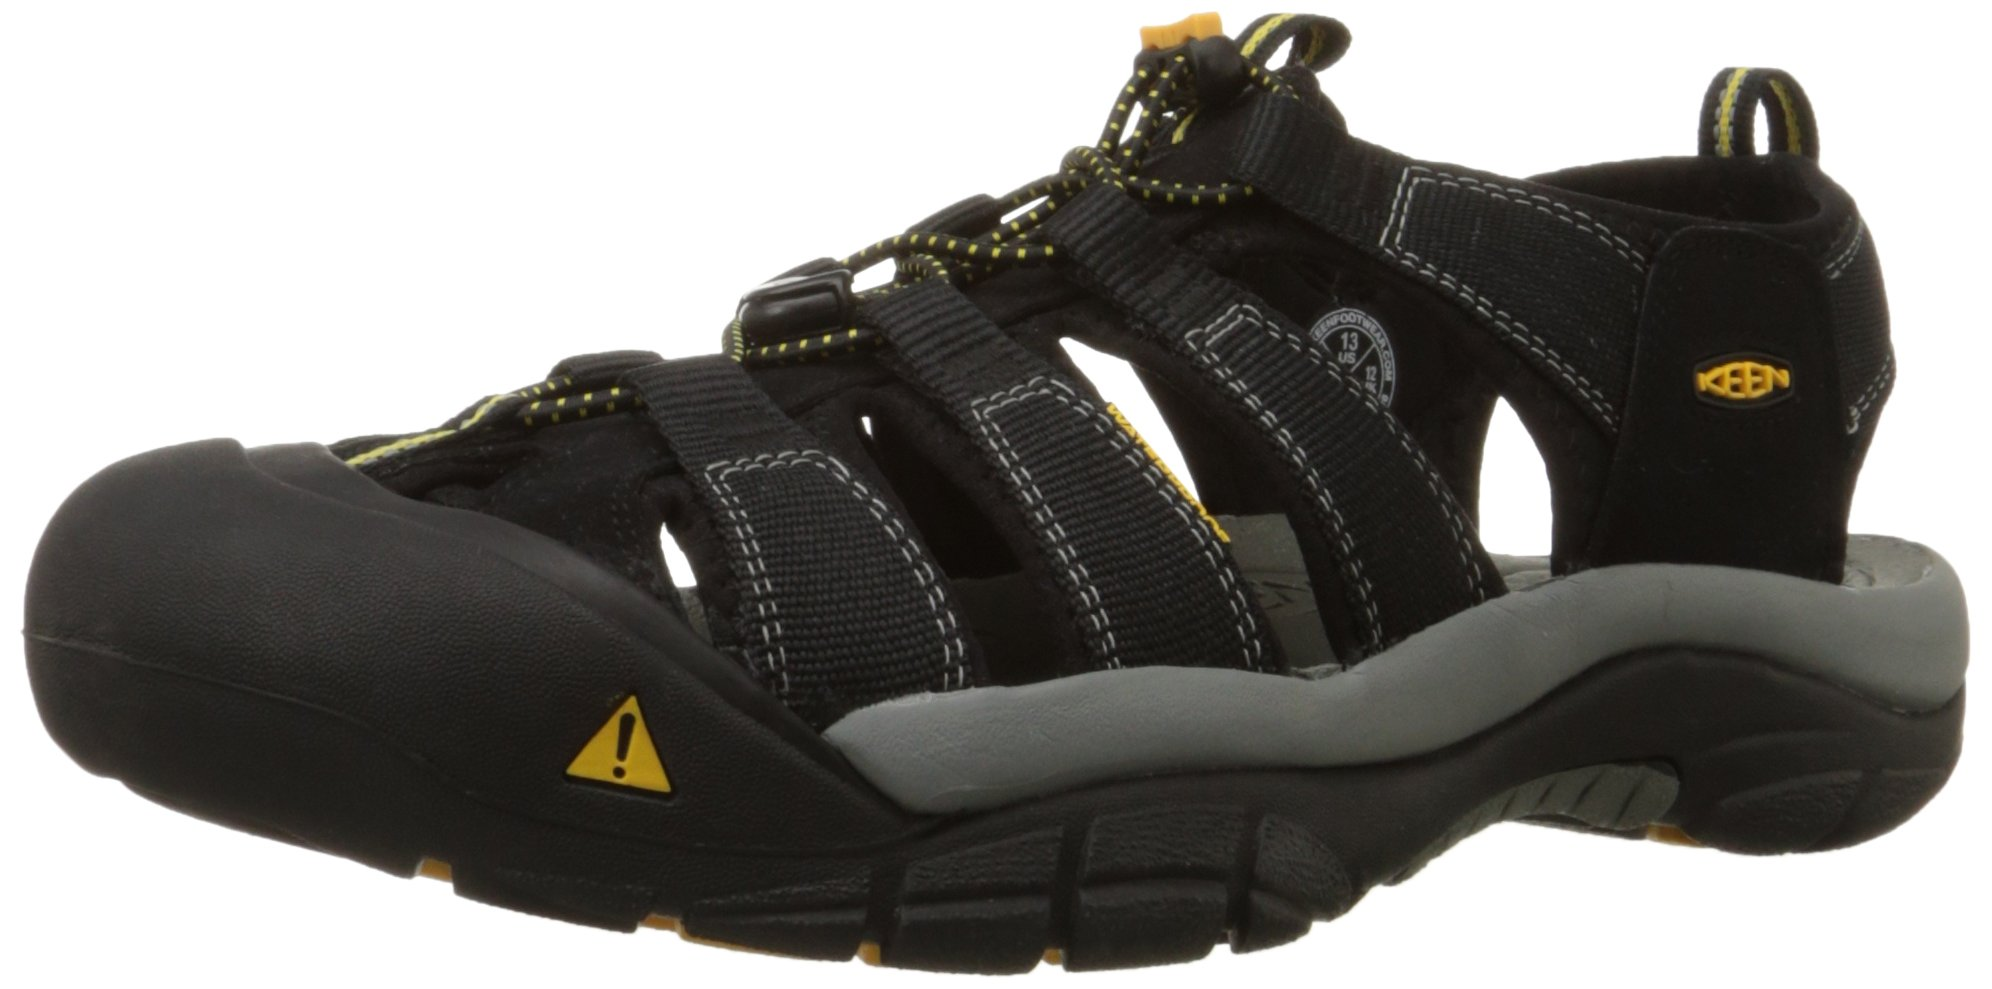 Keen Men's Newport H2 Sandal,Black,12 M US